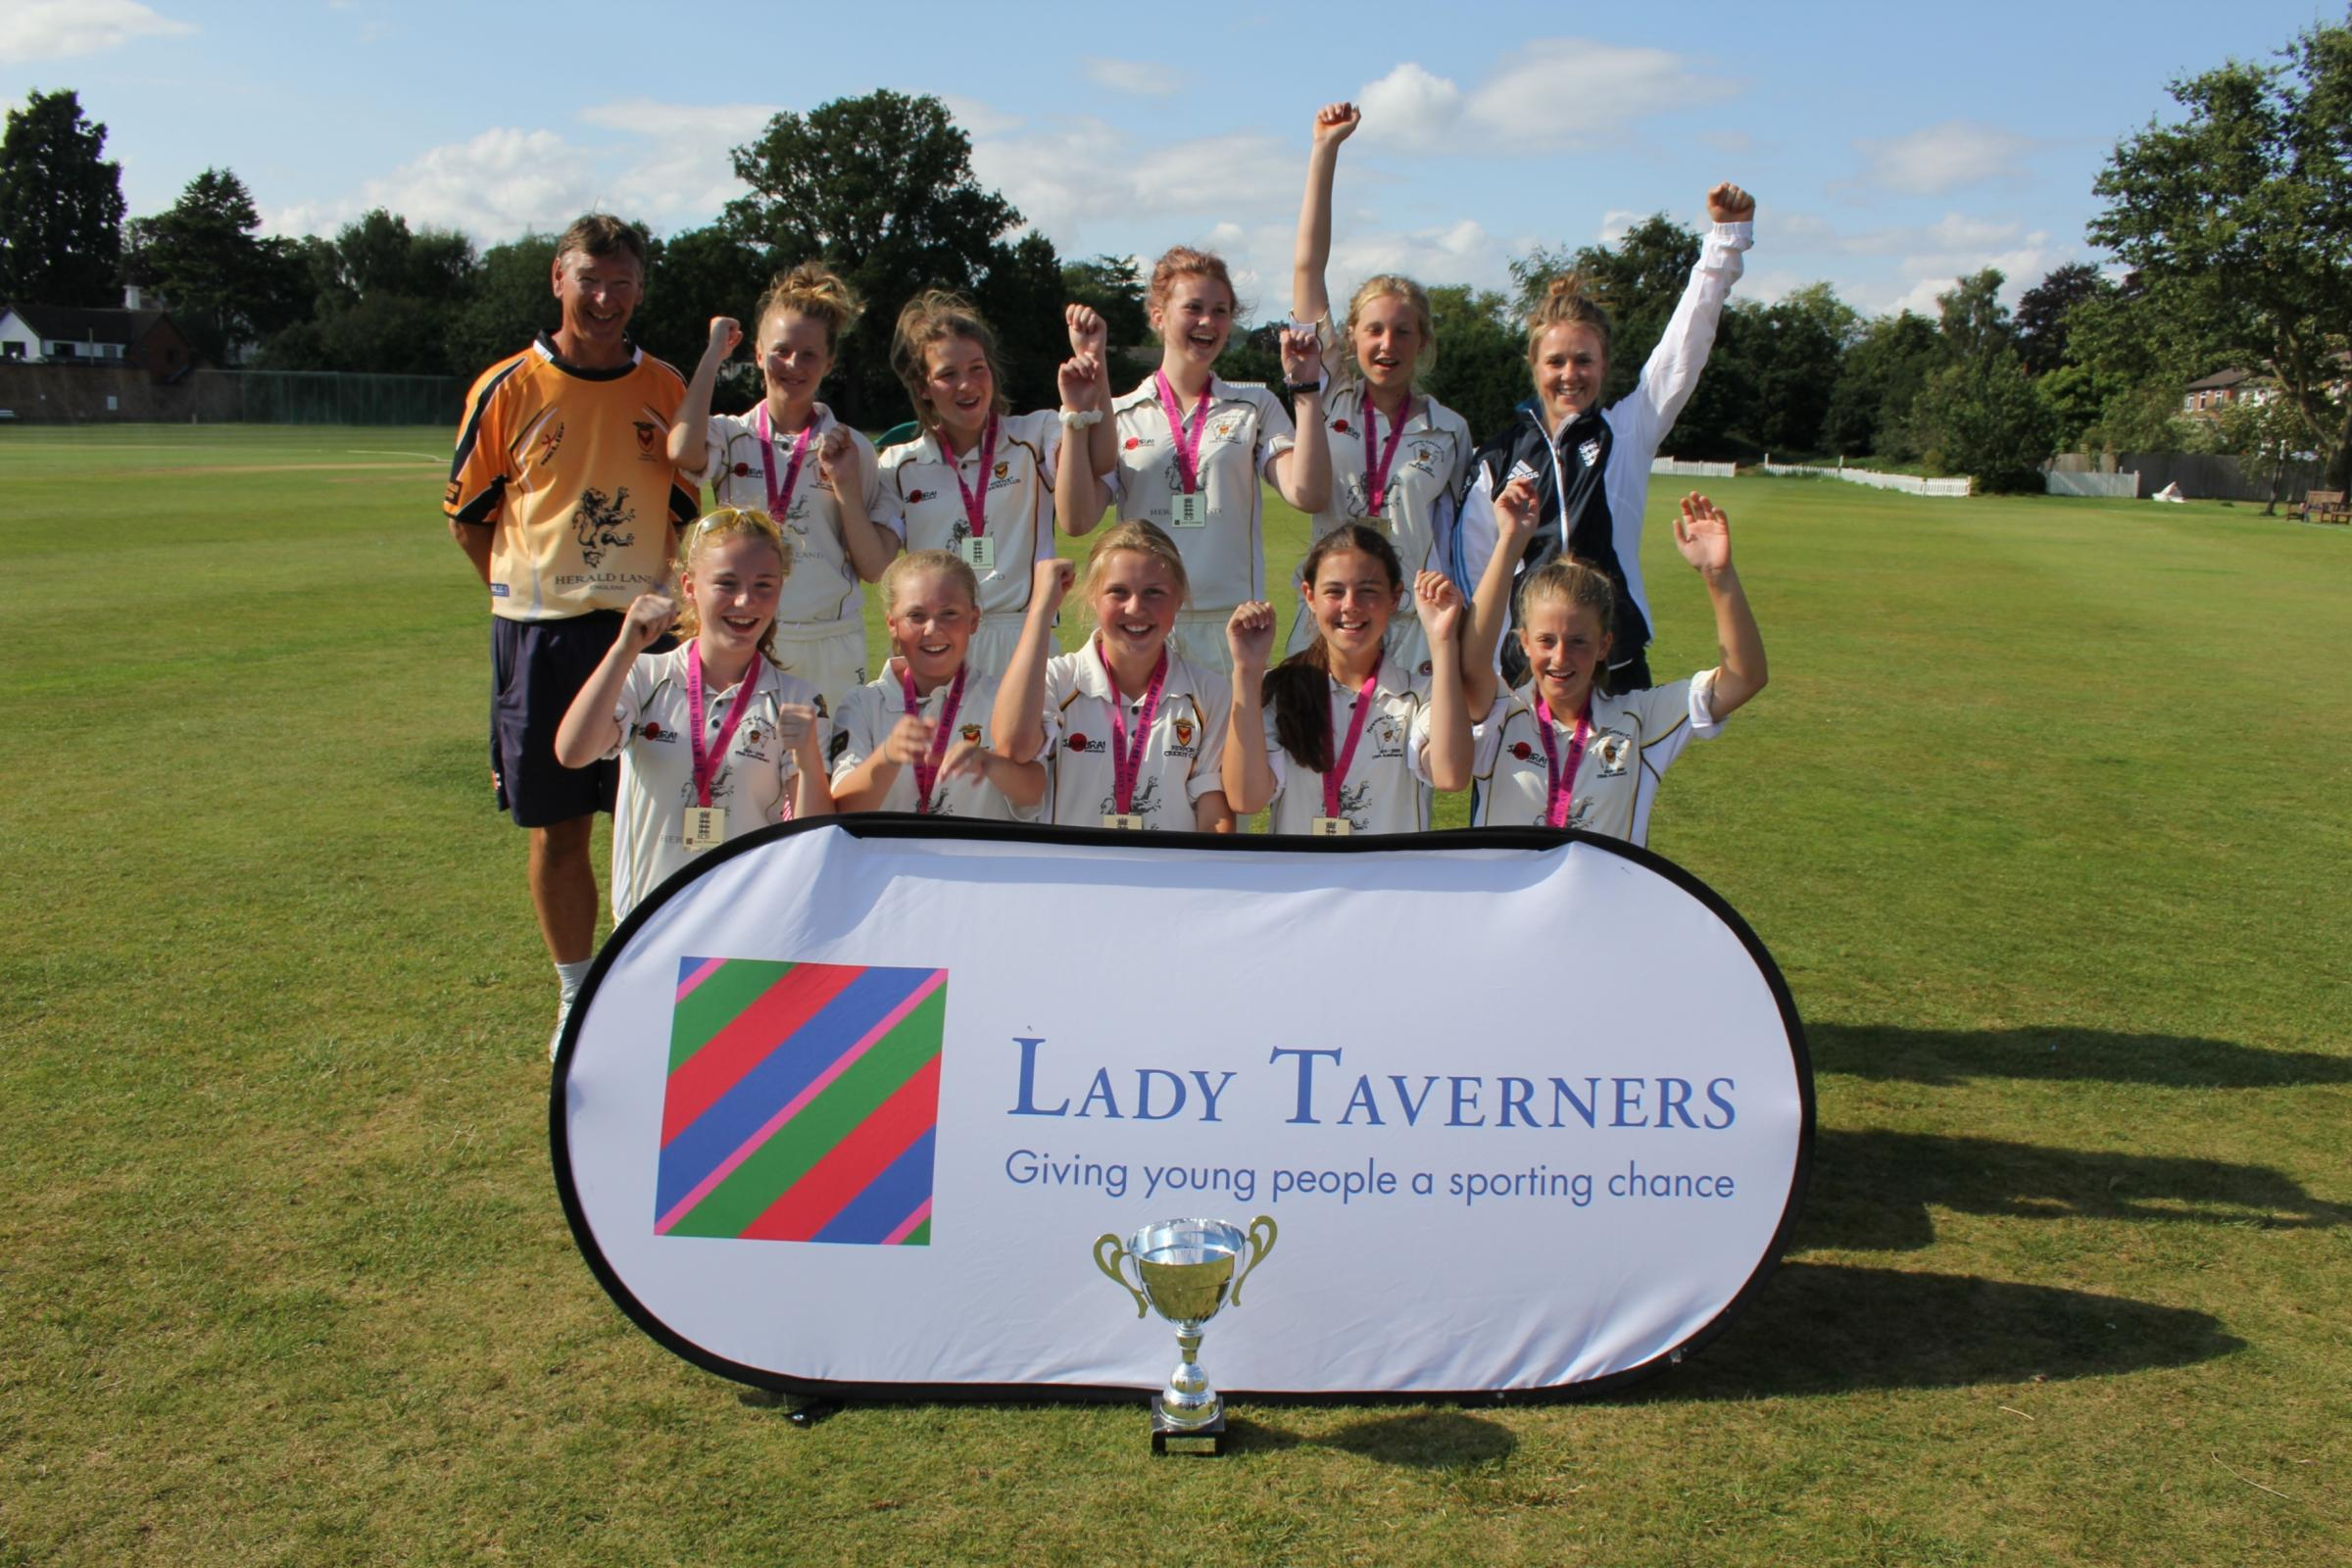 CHAMPIONS: Newport CC celebrate winning the U15 National Lady Taverners T20 competition with England International Becky Grundy. Pictures courtesy of Lord's Taverners